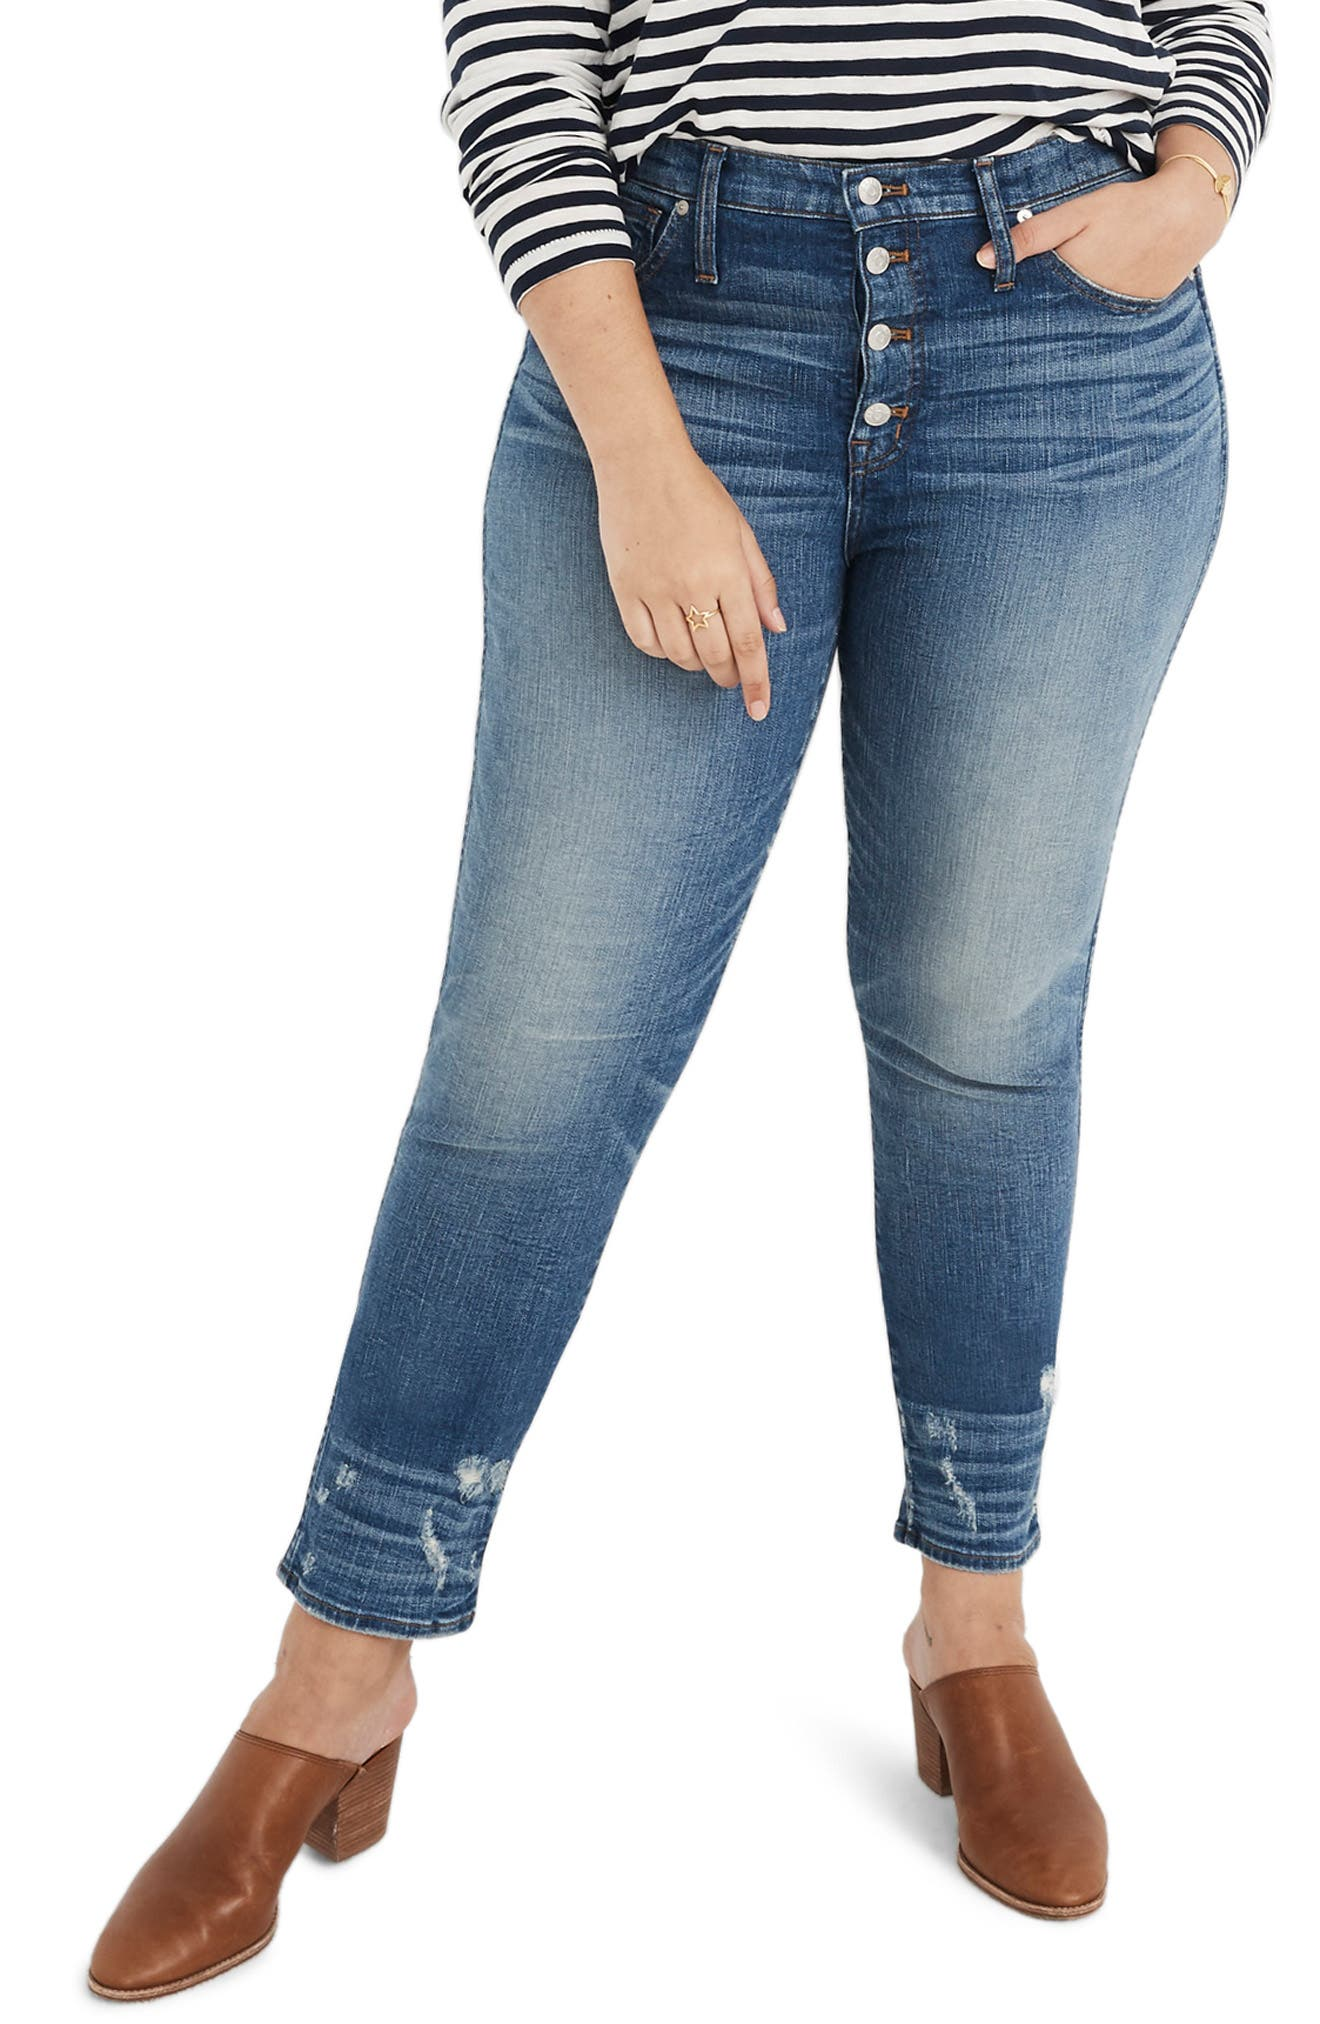 MADEWELL,                             Distressed Button Front High Waist Slim Straight Jeans,                             Alternate thumbnail 2, color,                             CAROLINE